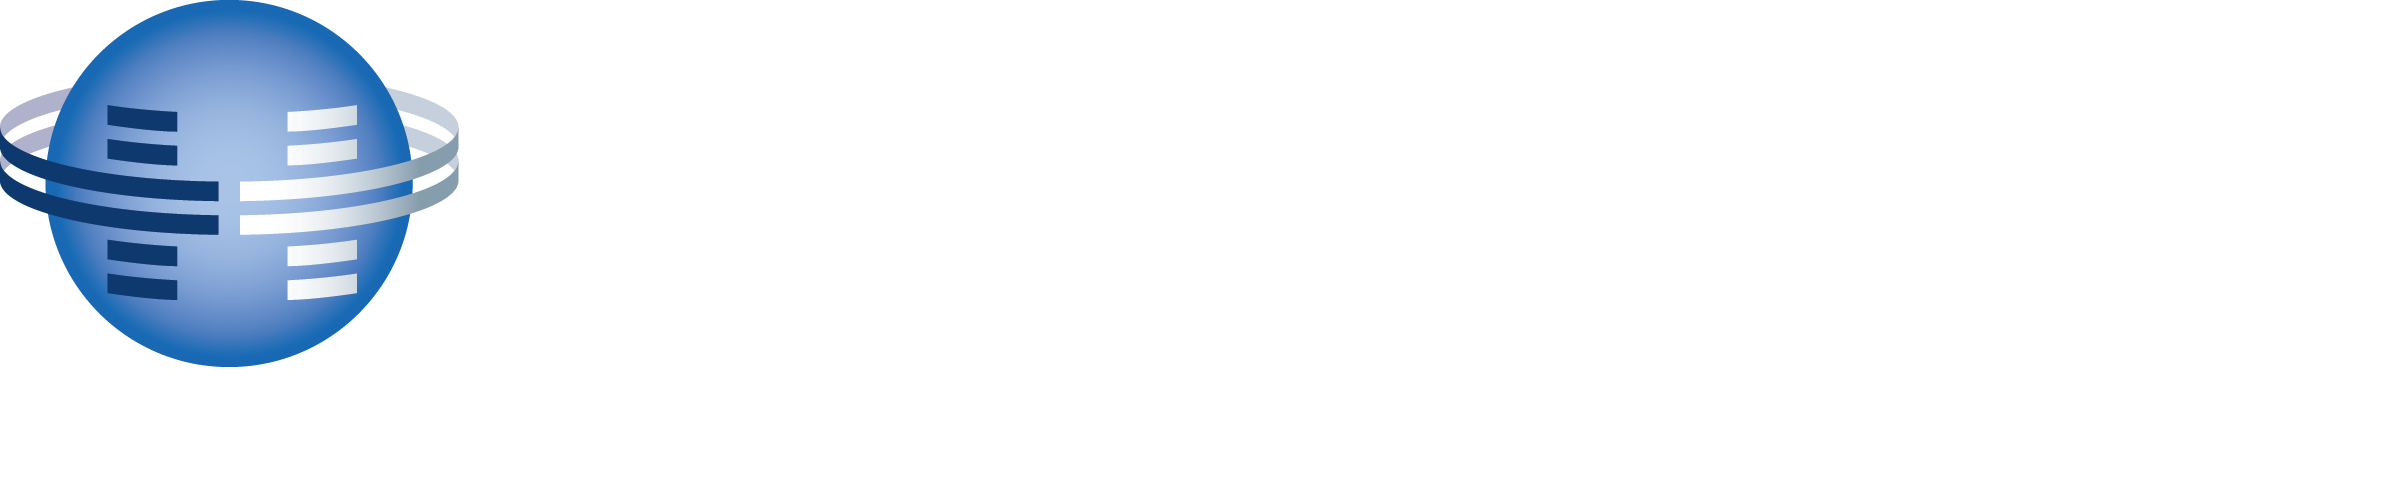 HT_Workforce_logo_hor_white_color_globe